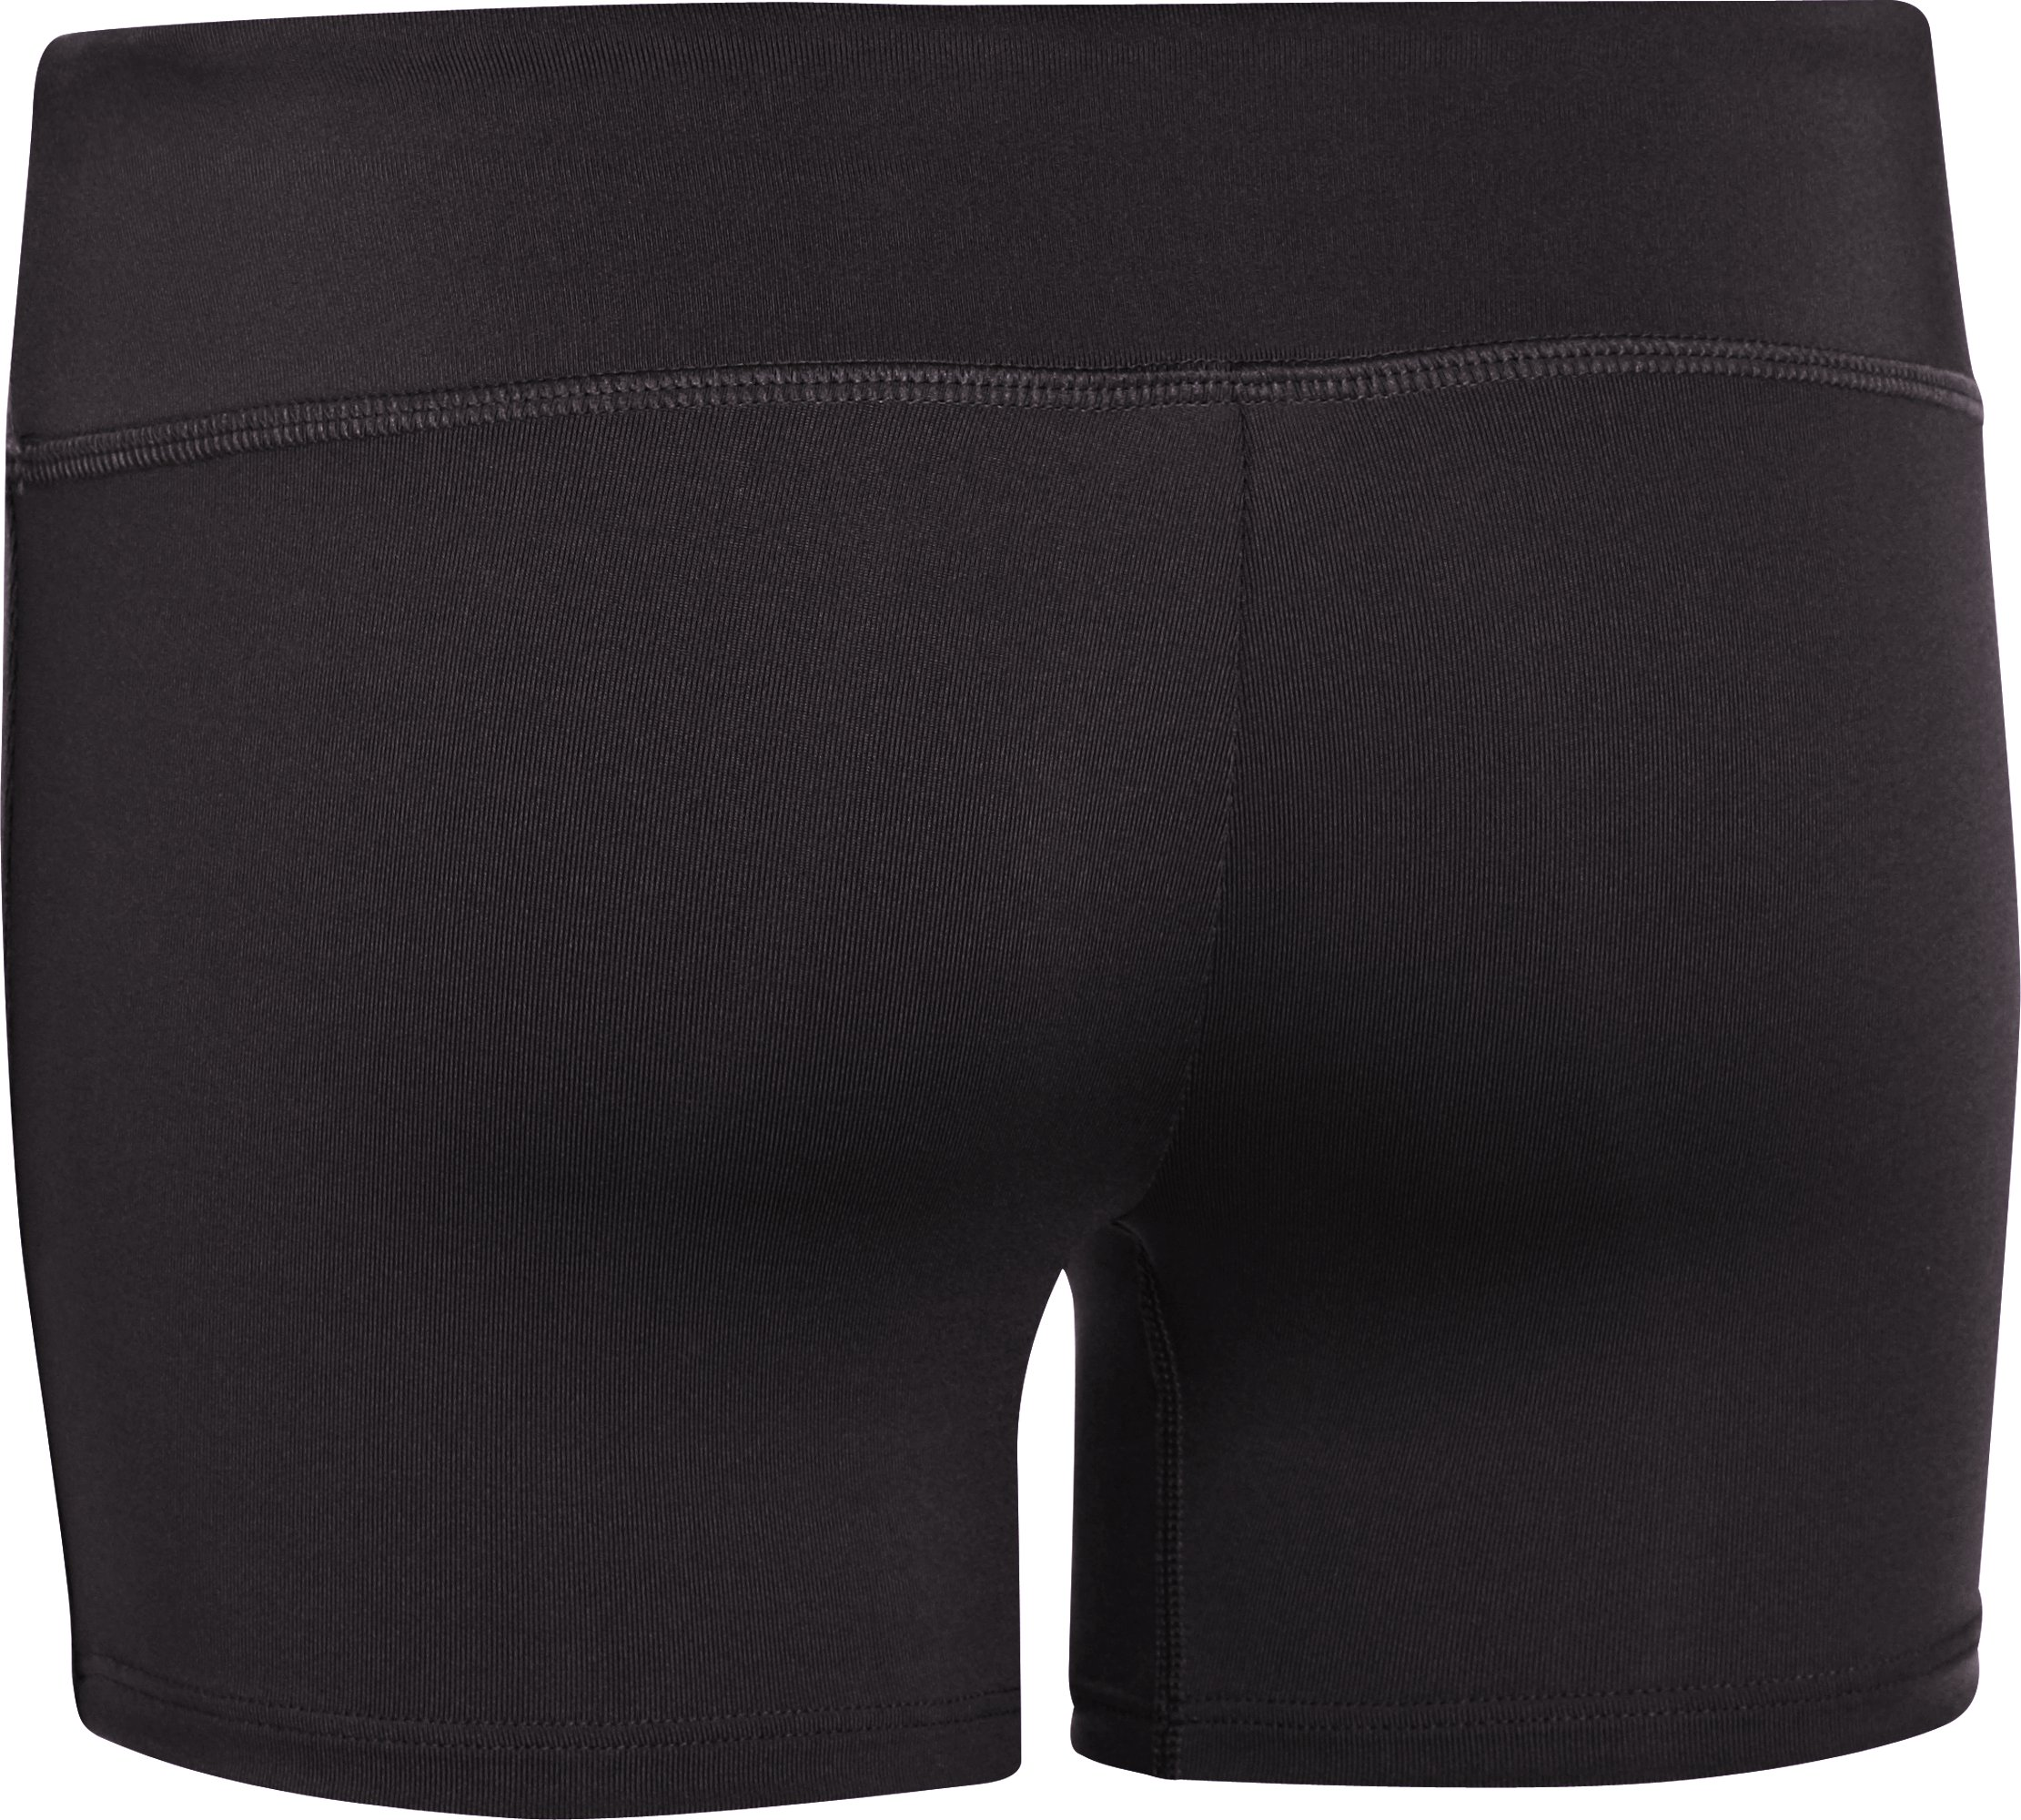 "Girls' HeatGear® Sonic 3"" Shorts, Black , undefined"